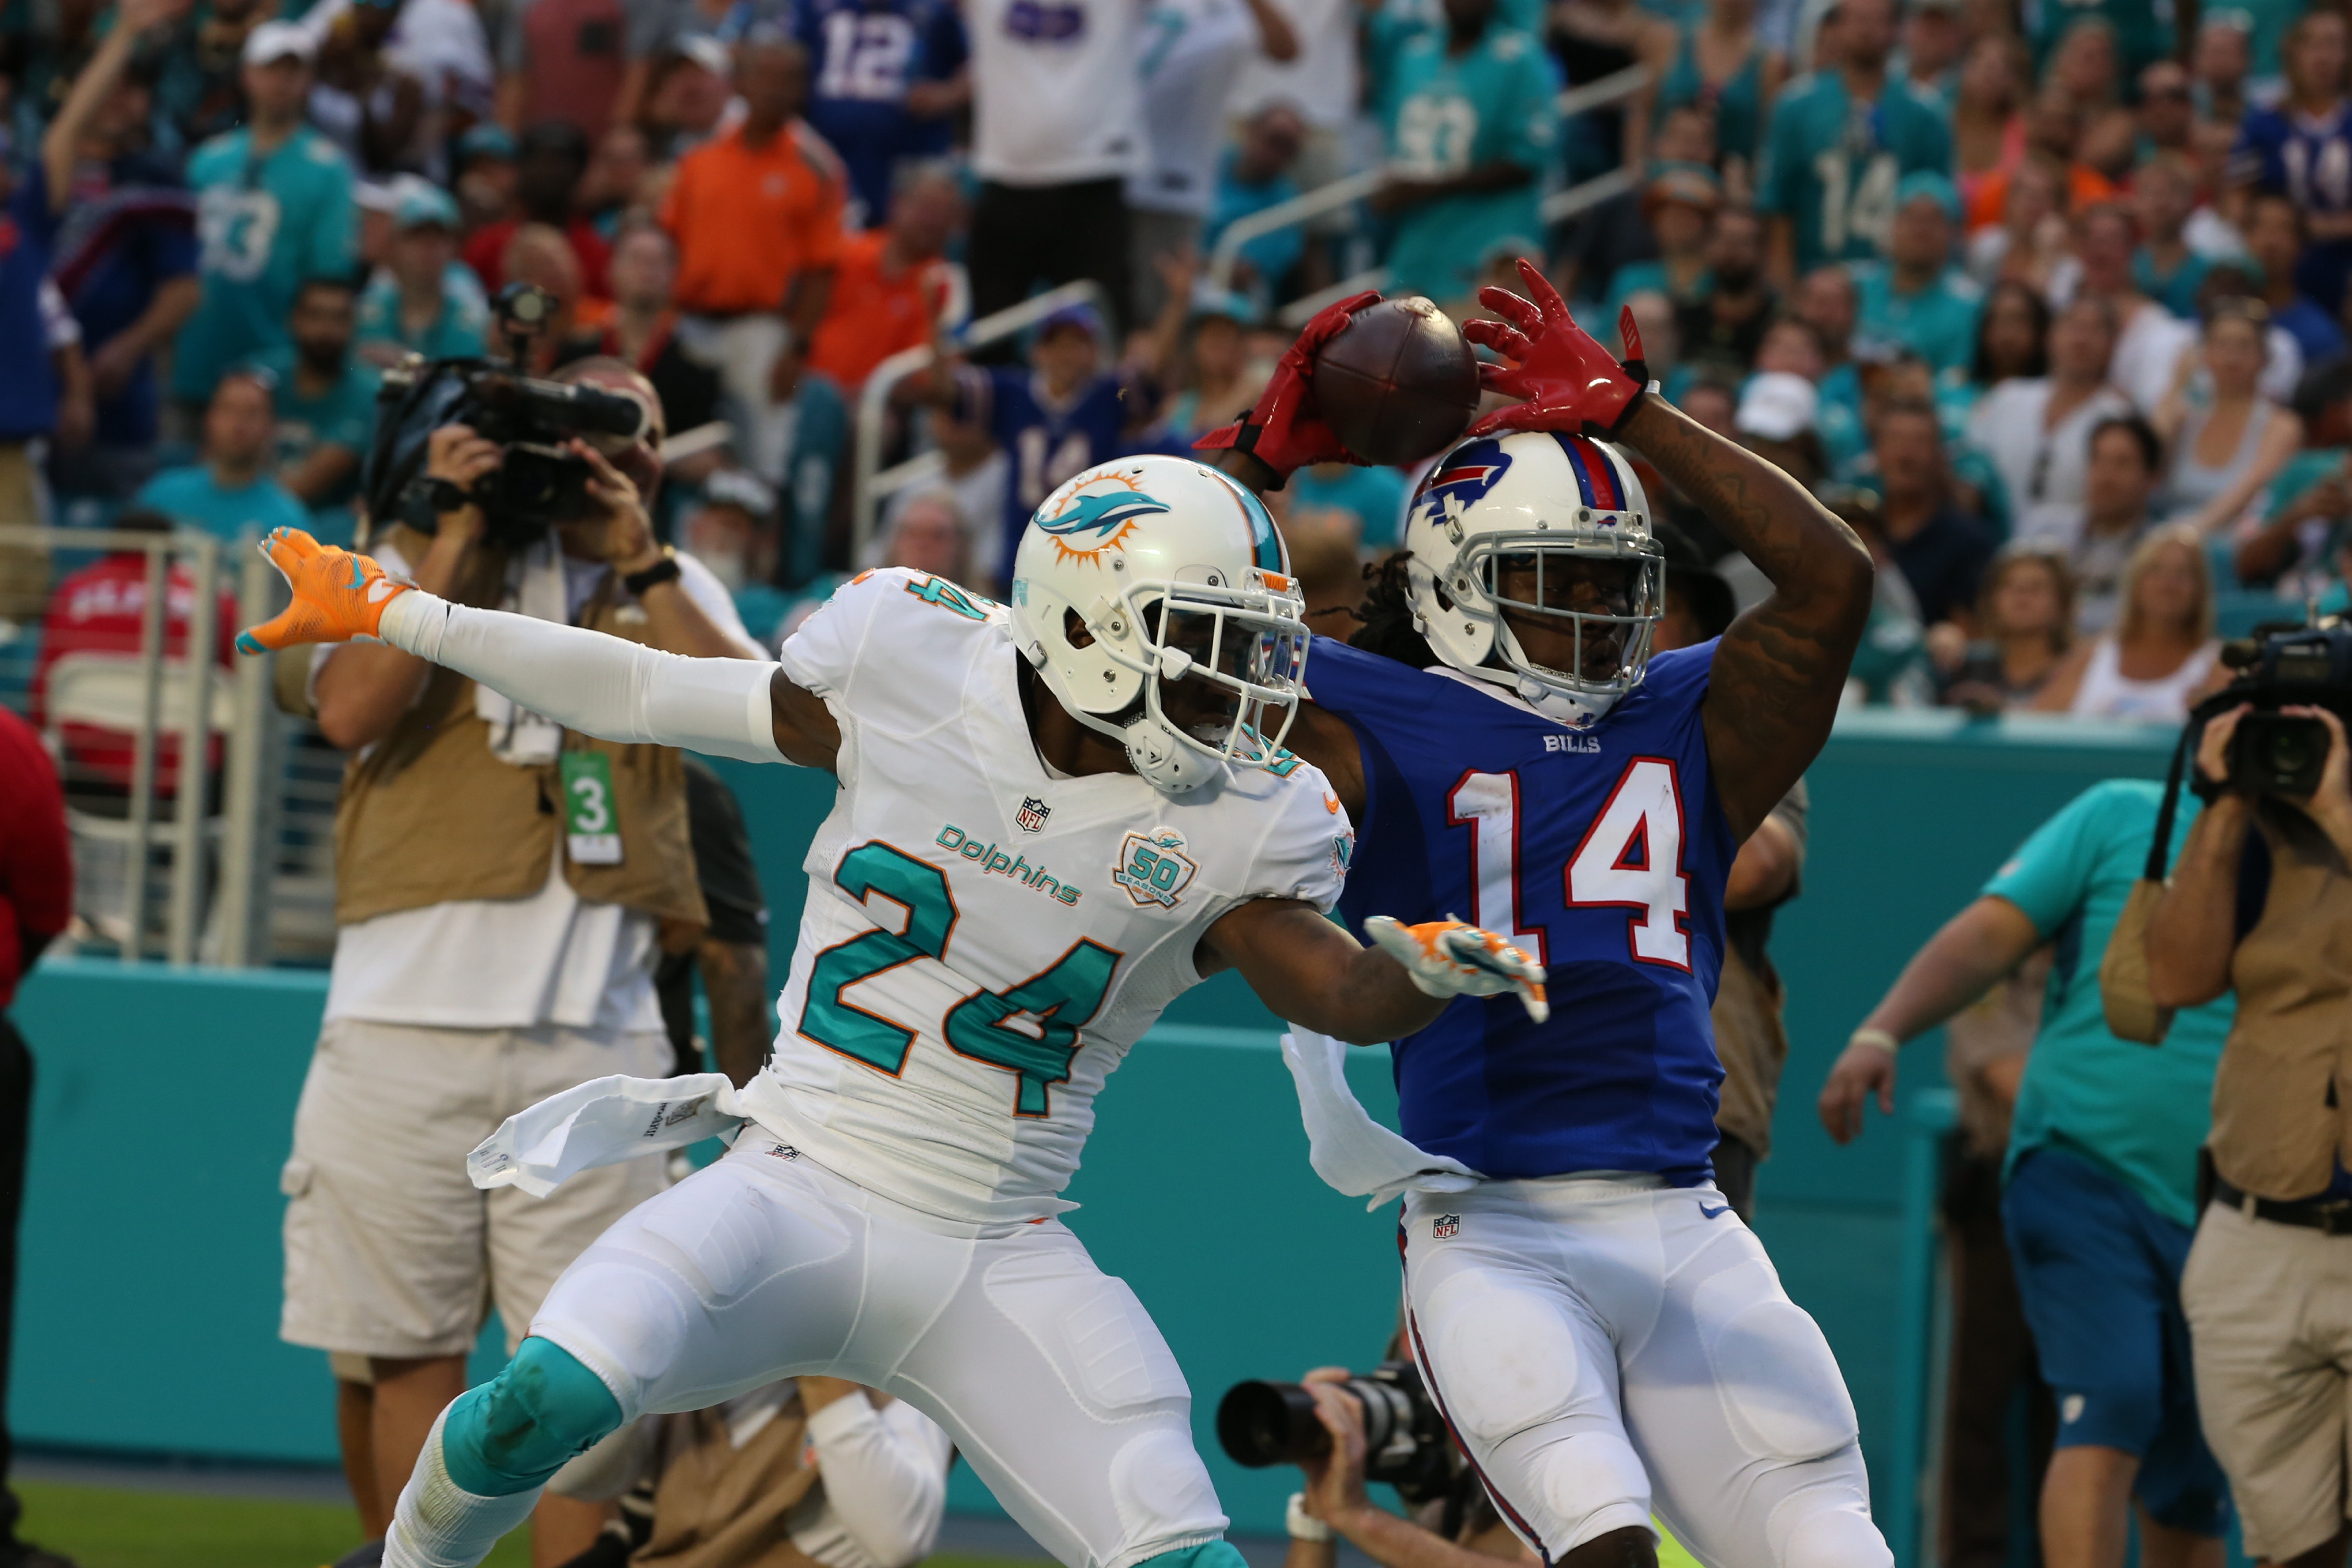 Bills receiver Sammy Watkins strained a calf muscle while making a catch against the Dolphins in Miami on Sunday.